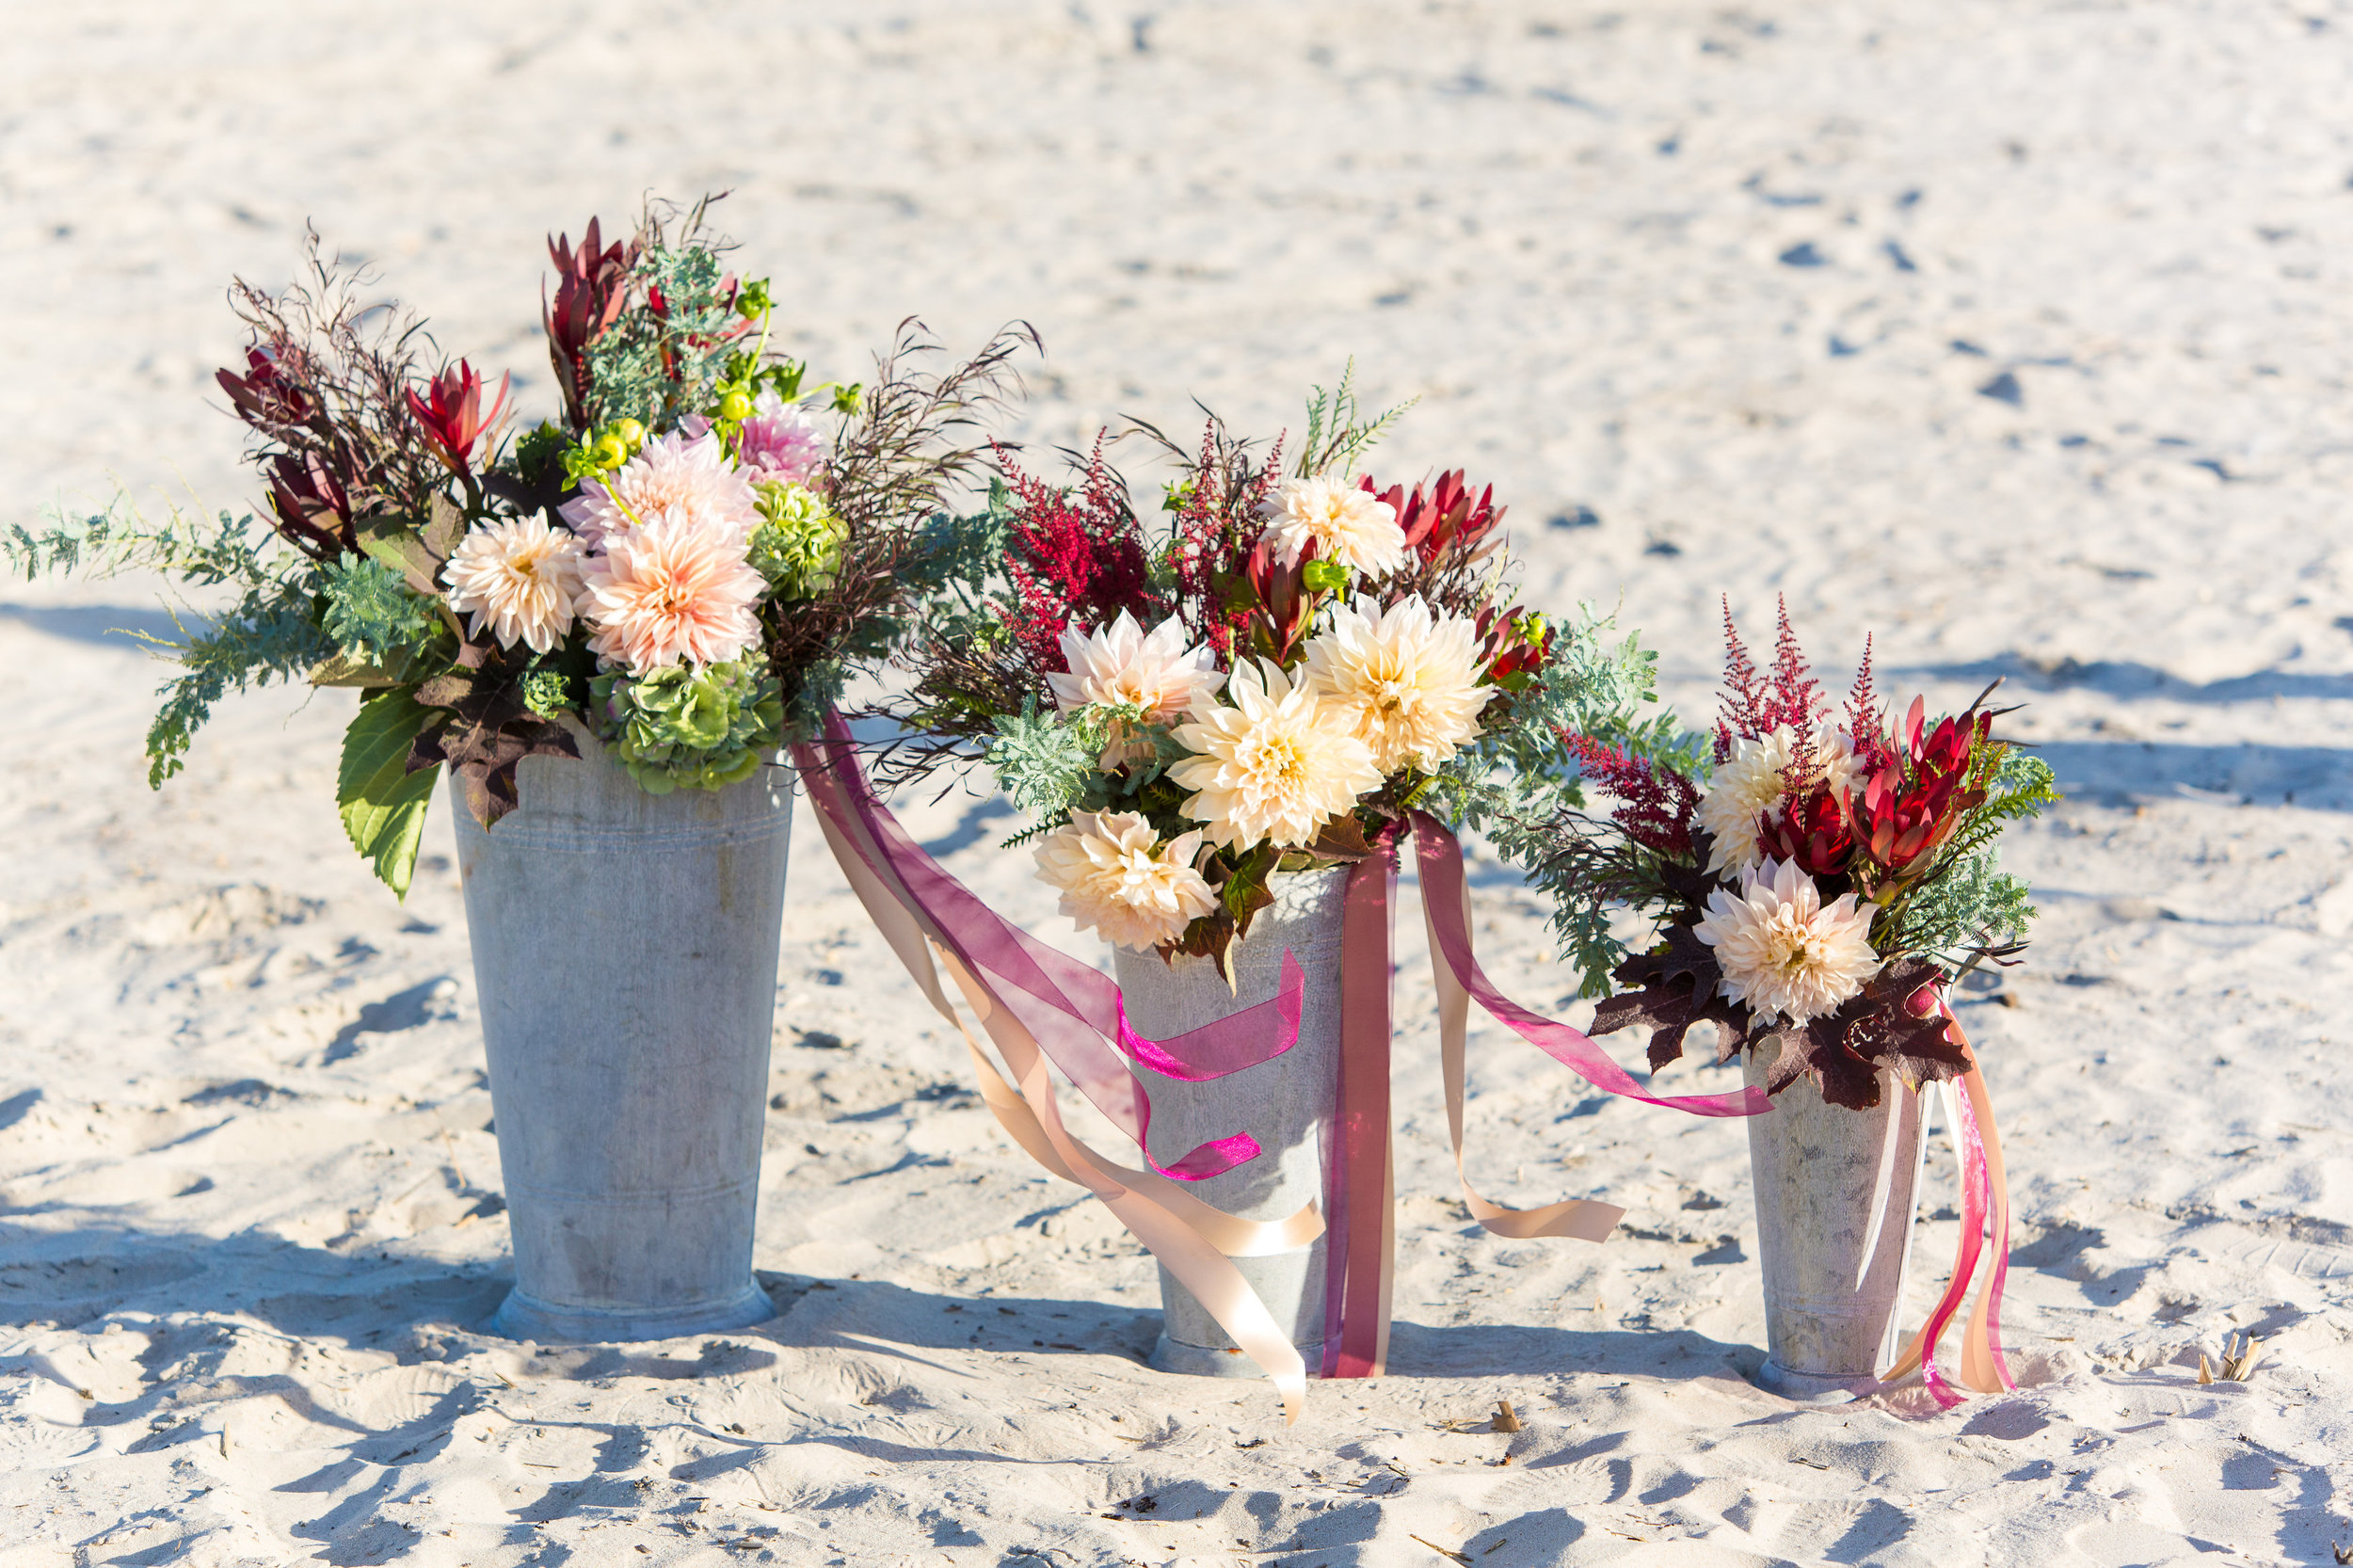 These buckets have never let us down for beach weddings. The buckets themselves are casual enough on their own that we can go all out in packing them full of lush arrangements of flowers. For Jenna and Jon's wedding, we used huge dahlias, astilbe, hydrangea, greenery and leaves for bright colorful designs, and the ribbon tails gave such pretty movement in the breeze.